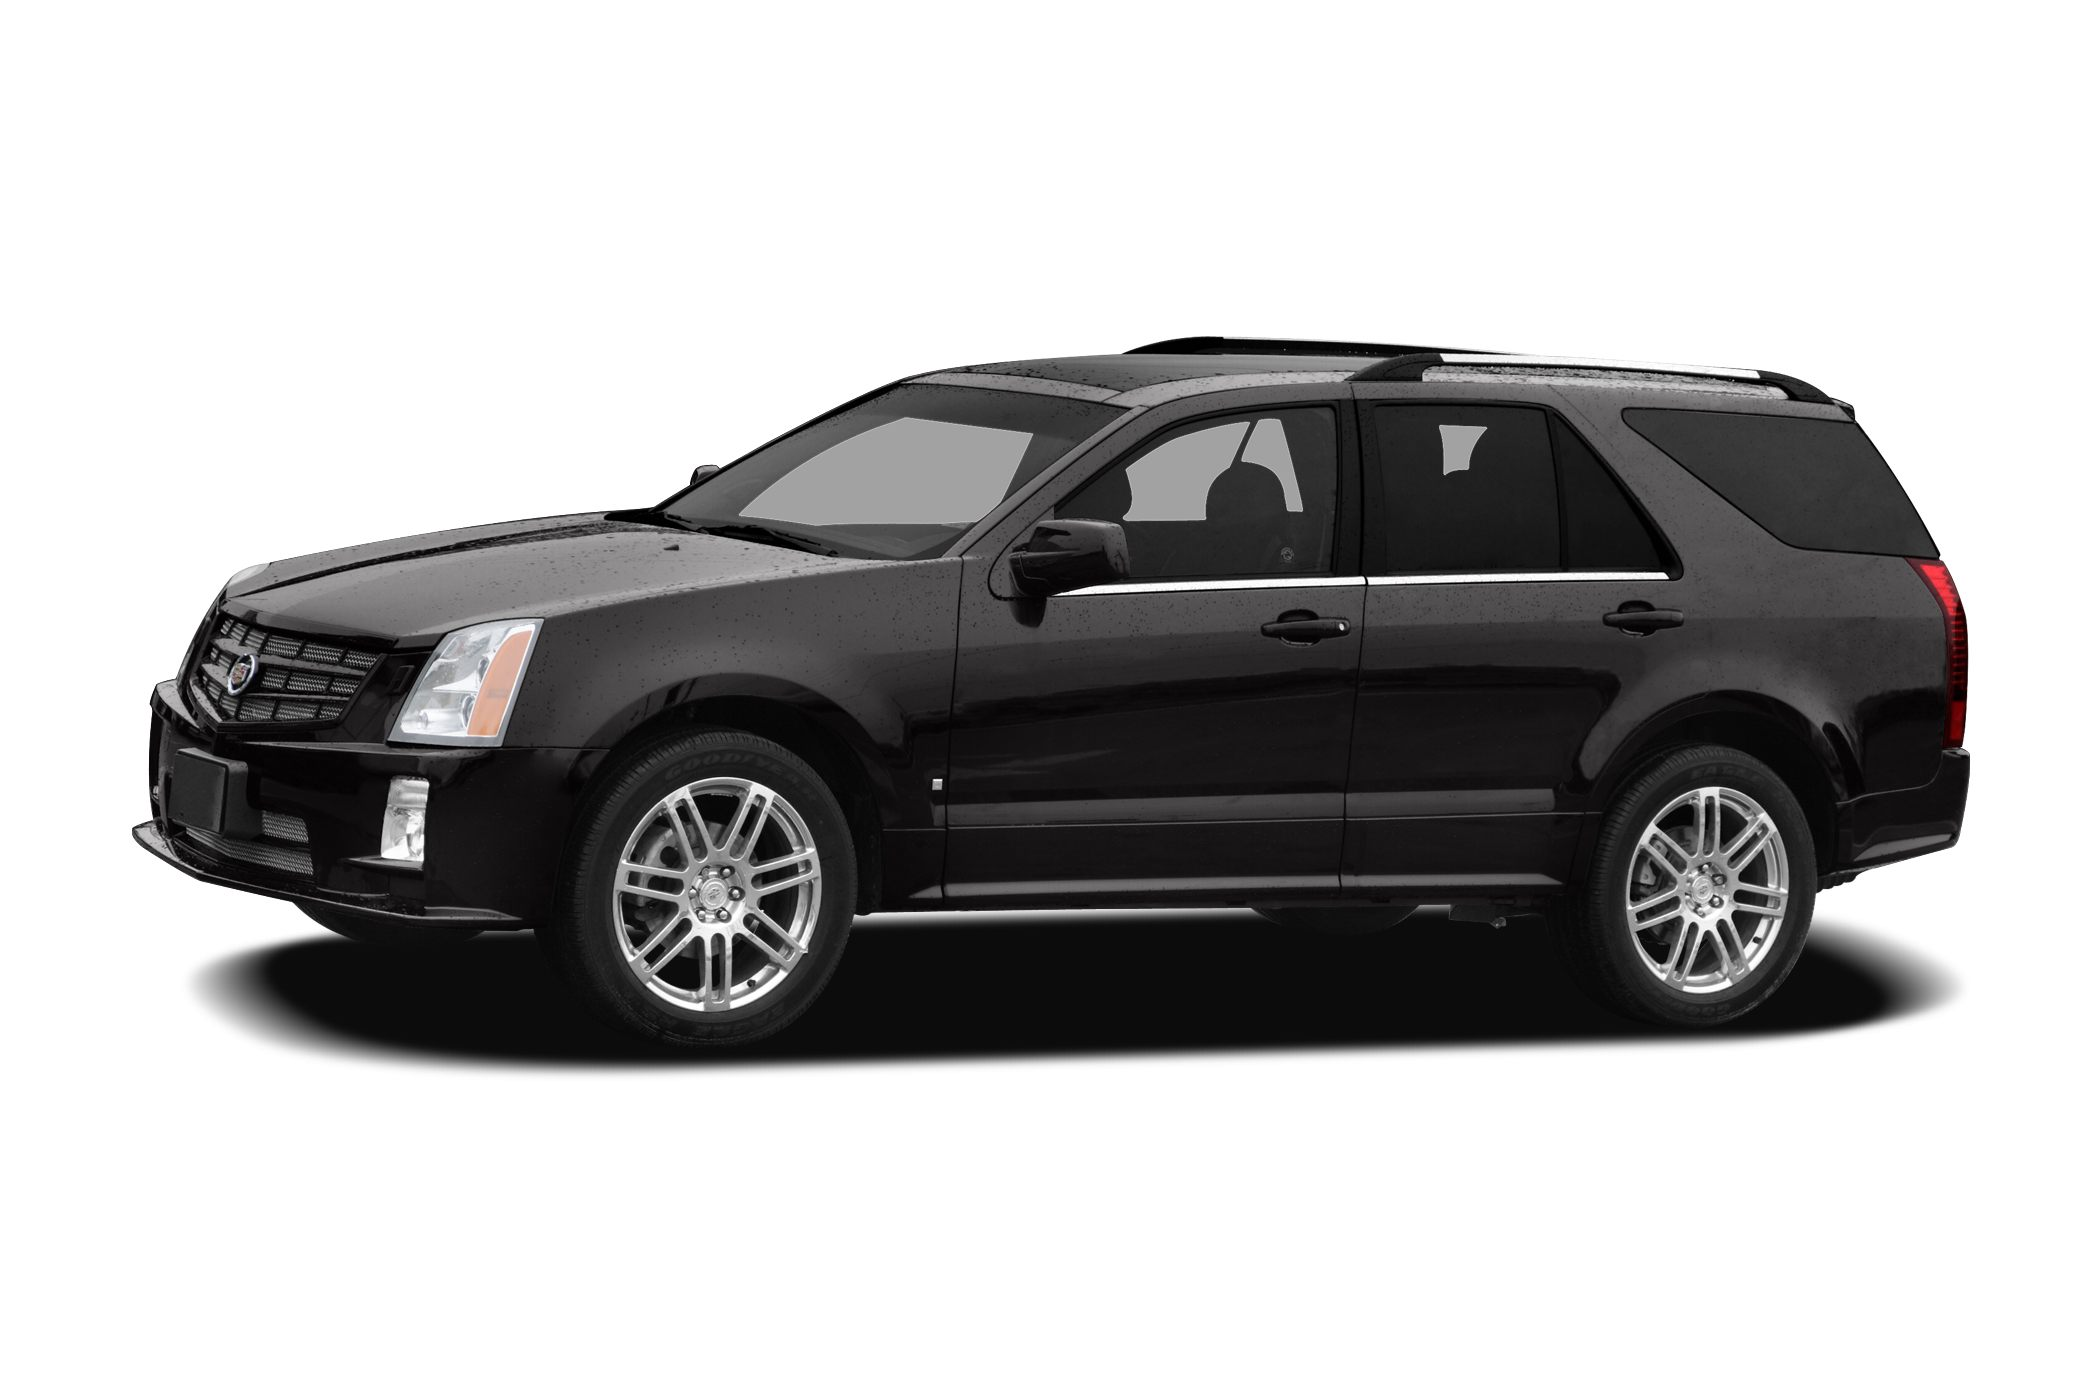 2007 Cadillac SRX V8 SUV for sale in Ocala for $11,998 with 115,437 miles.